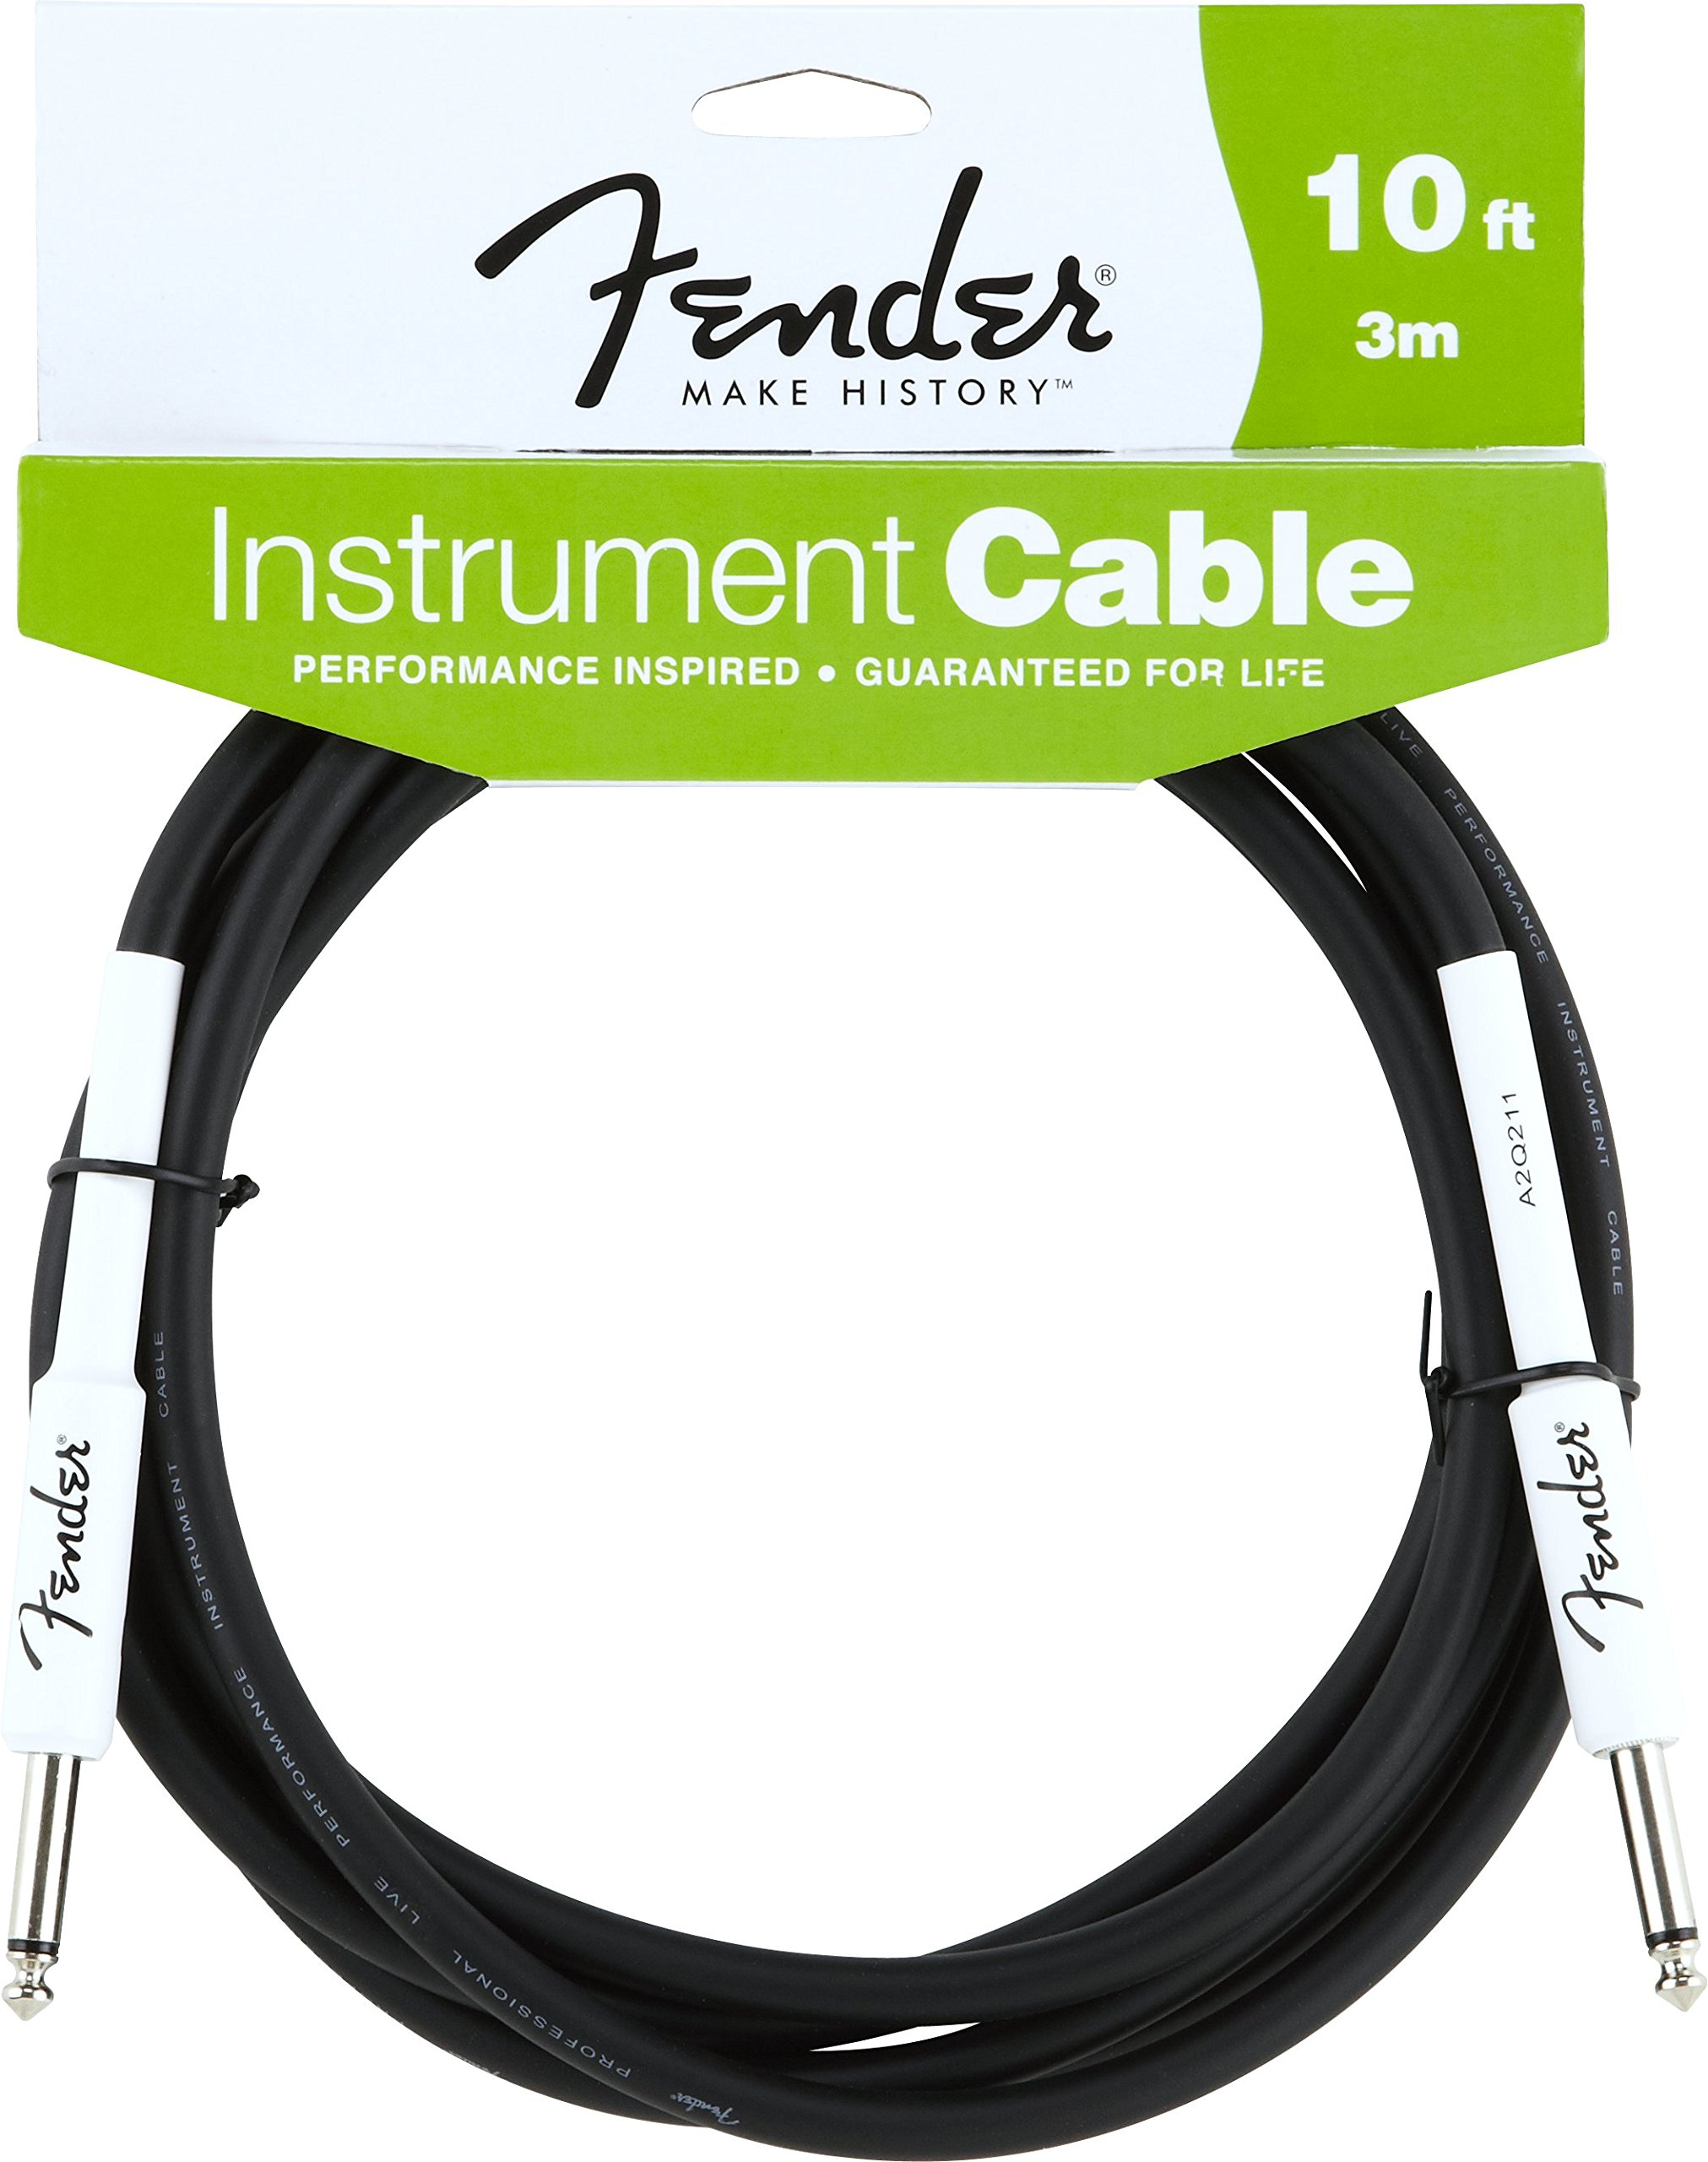 Fender Performance Series Instrument Cables (1/4 Straight-to-Straight) for electric guitar, bass guitar, electric mandolin, pro audio by Fender